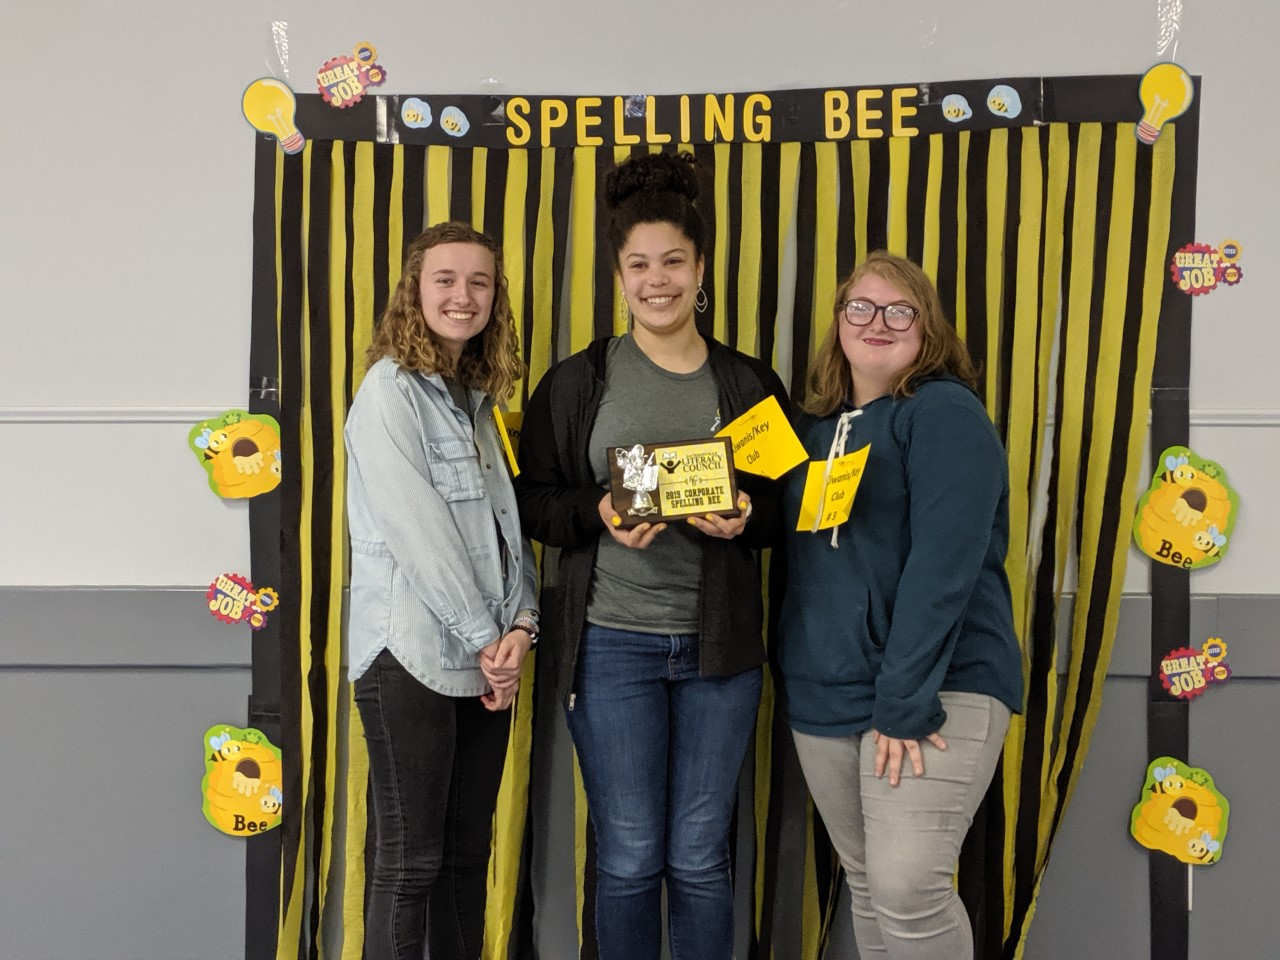 Key Club spelling bee team